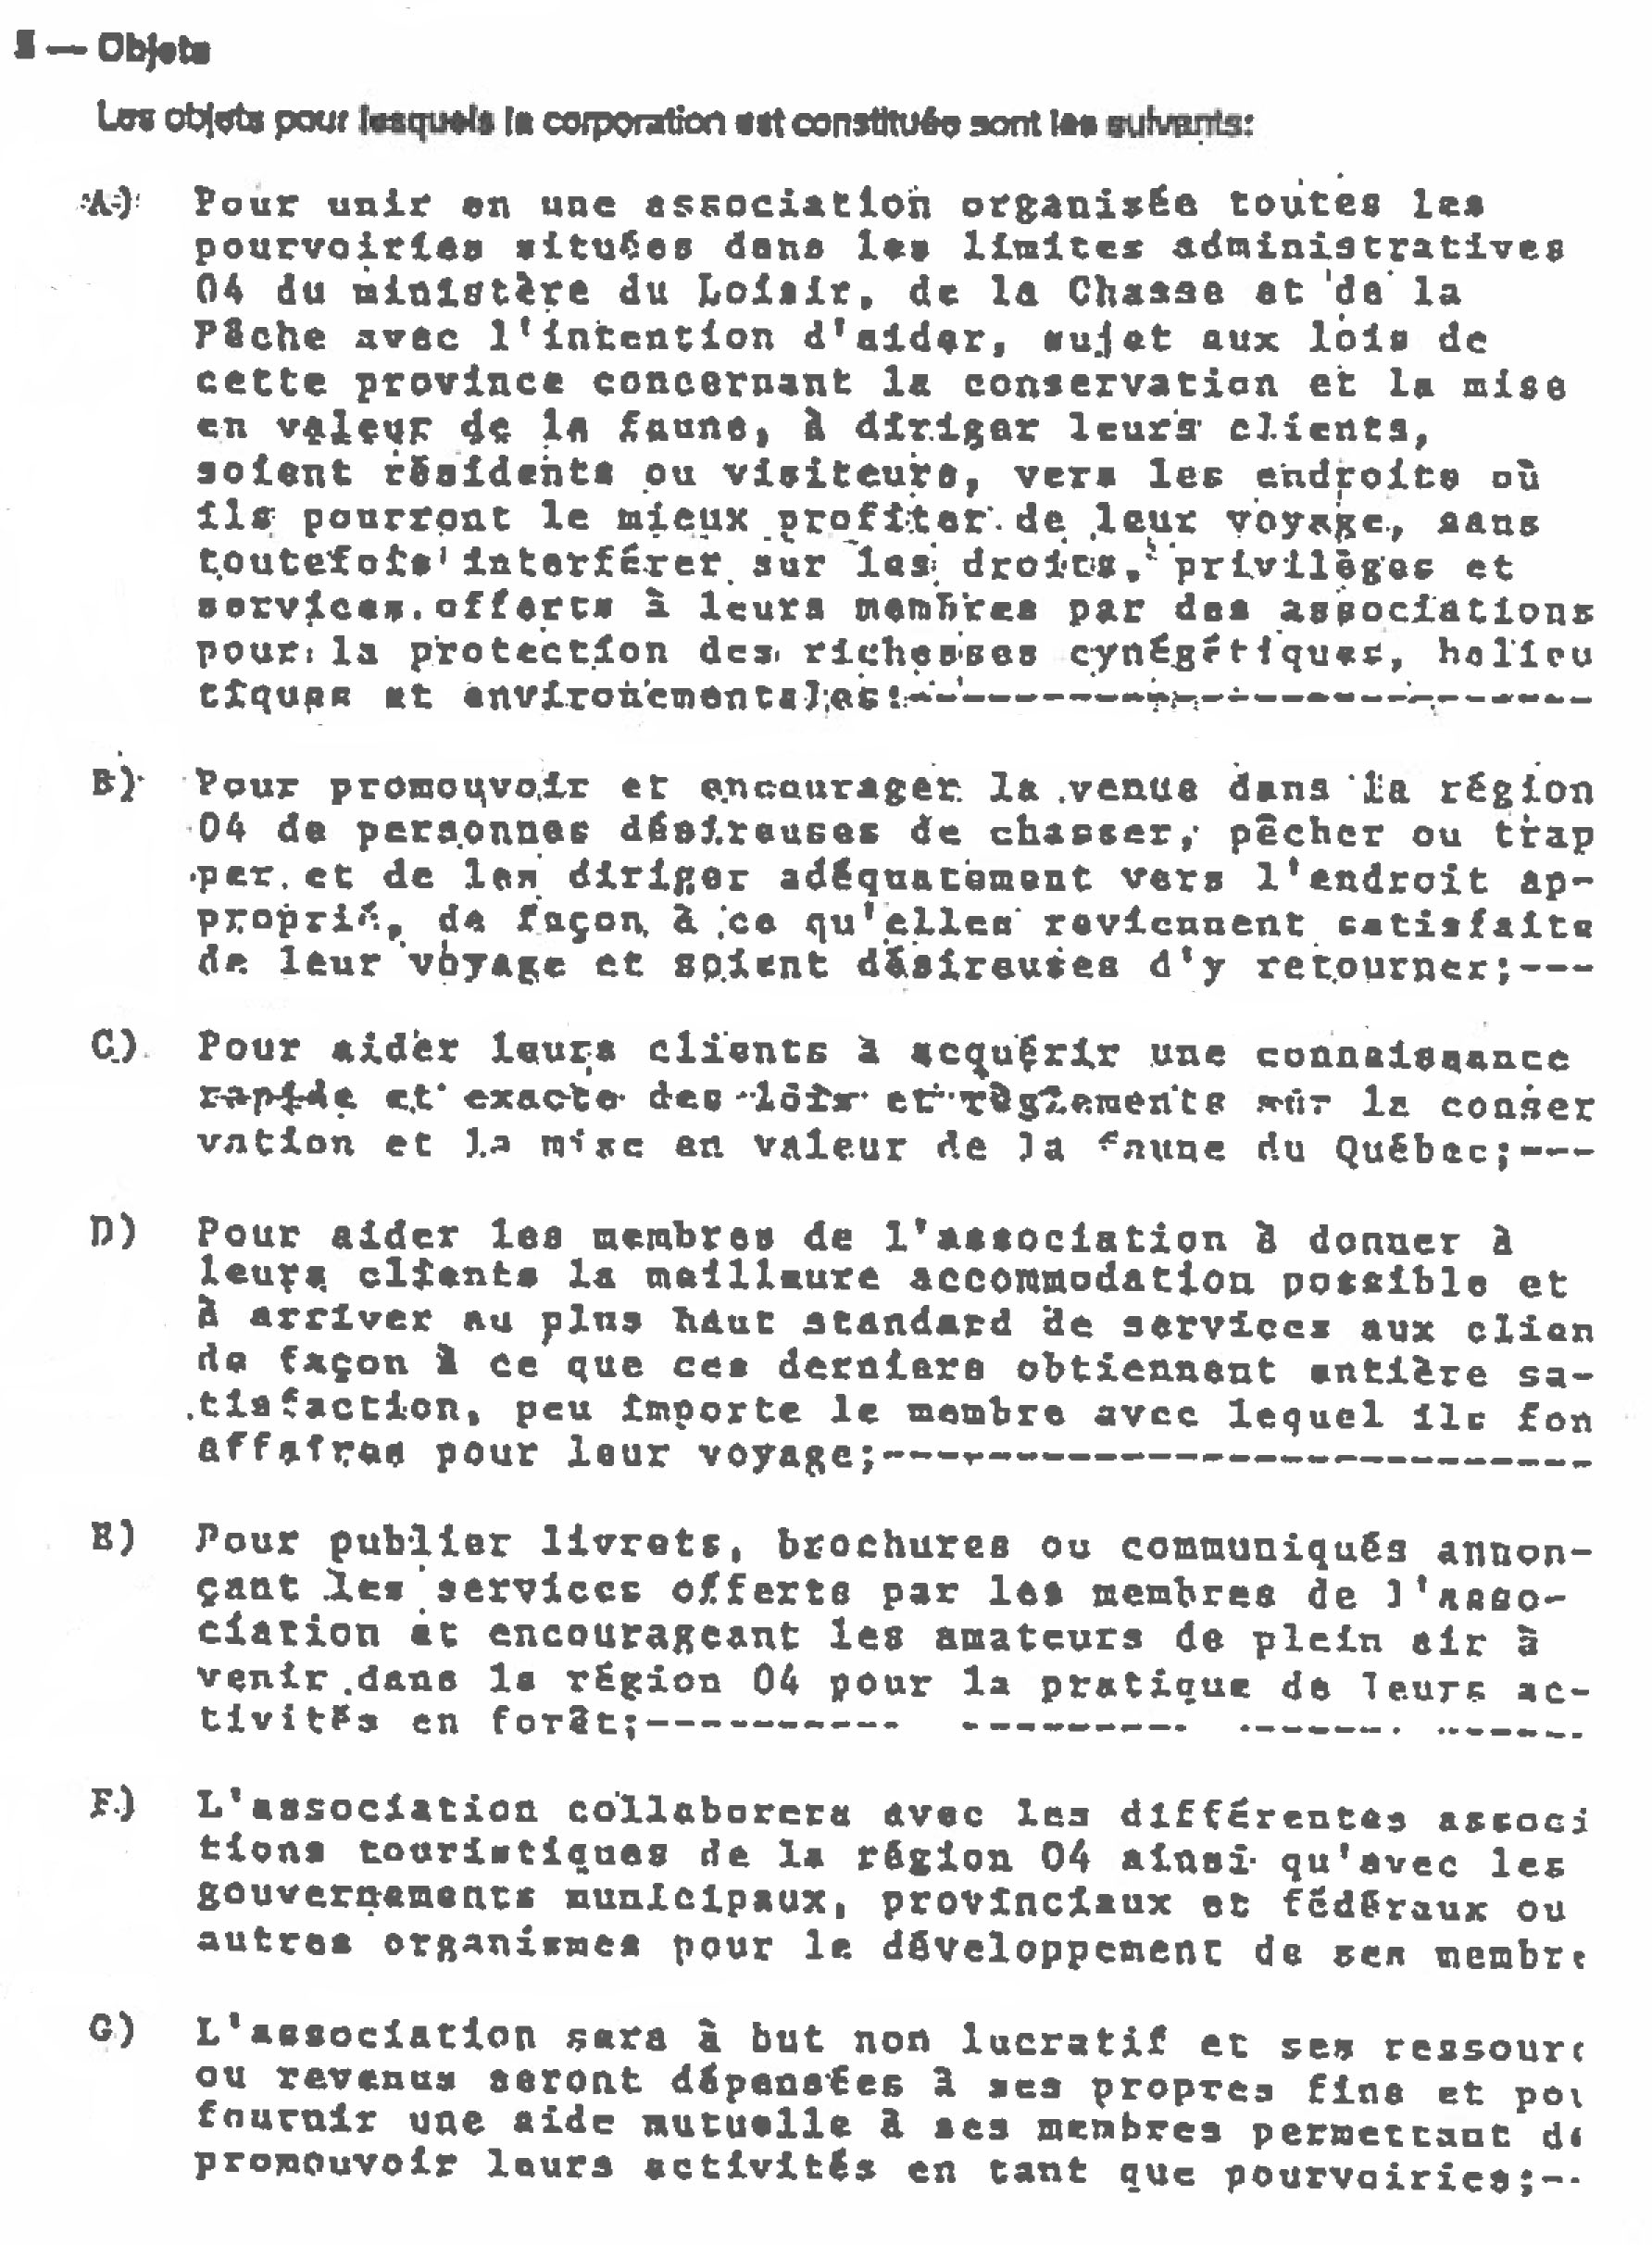 Excerpt from the 1984 letters patent .